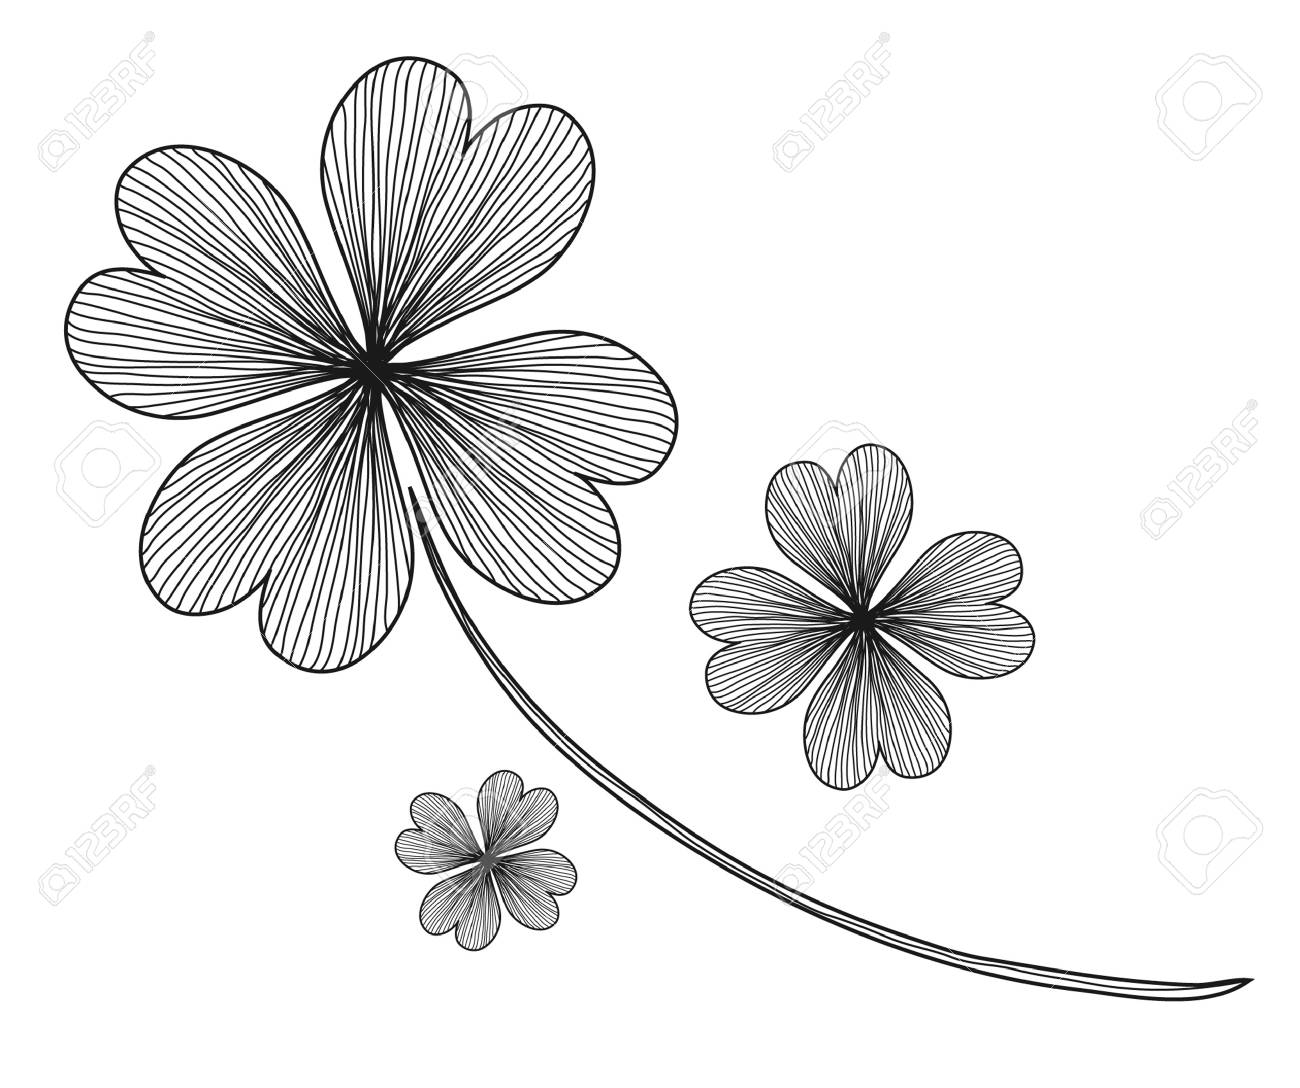 four leaf clovers for St. Patrick's Day Stock Vector - 12056161